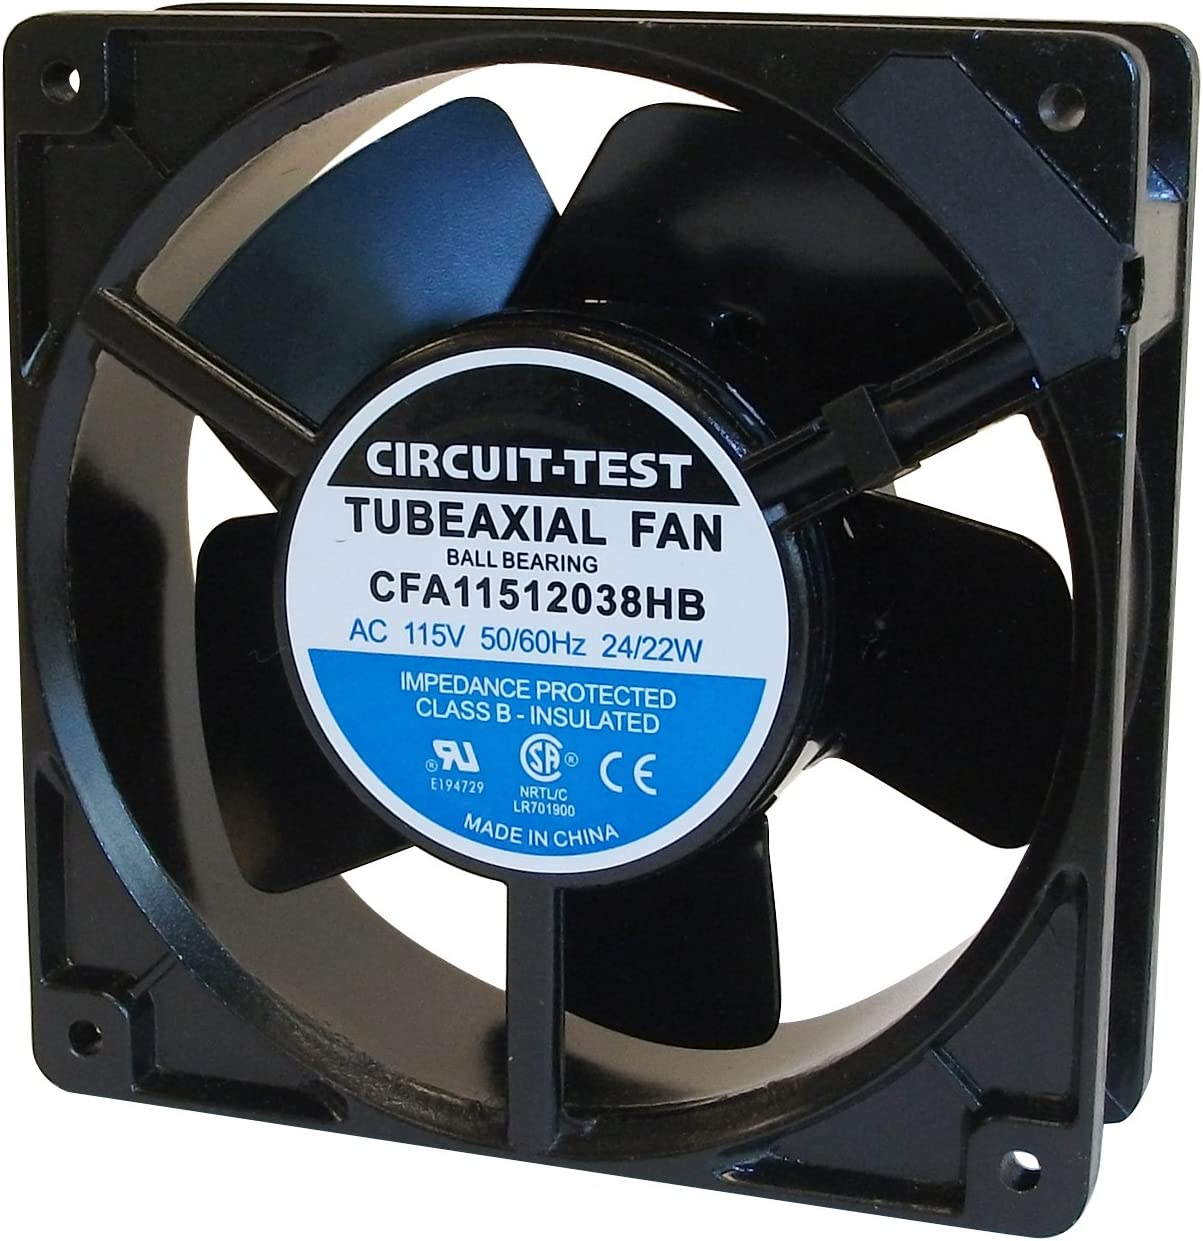 Circuit-Test 115V AC Industrial Cooling Fan - 120mm x 120mm x 38mm - Metal Blades Ball Bearings Aluminum Frame - High Speed